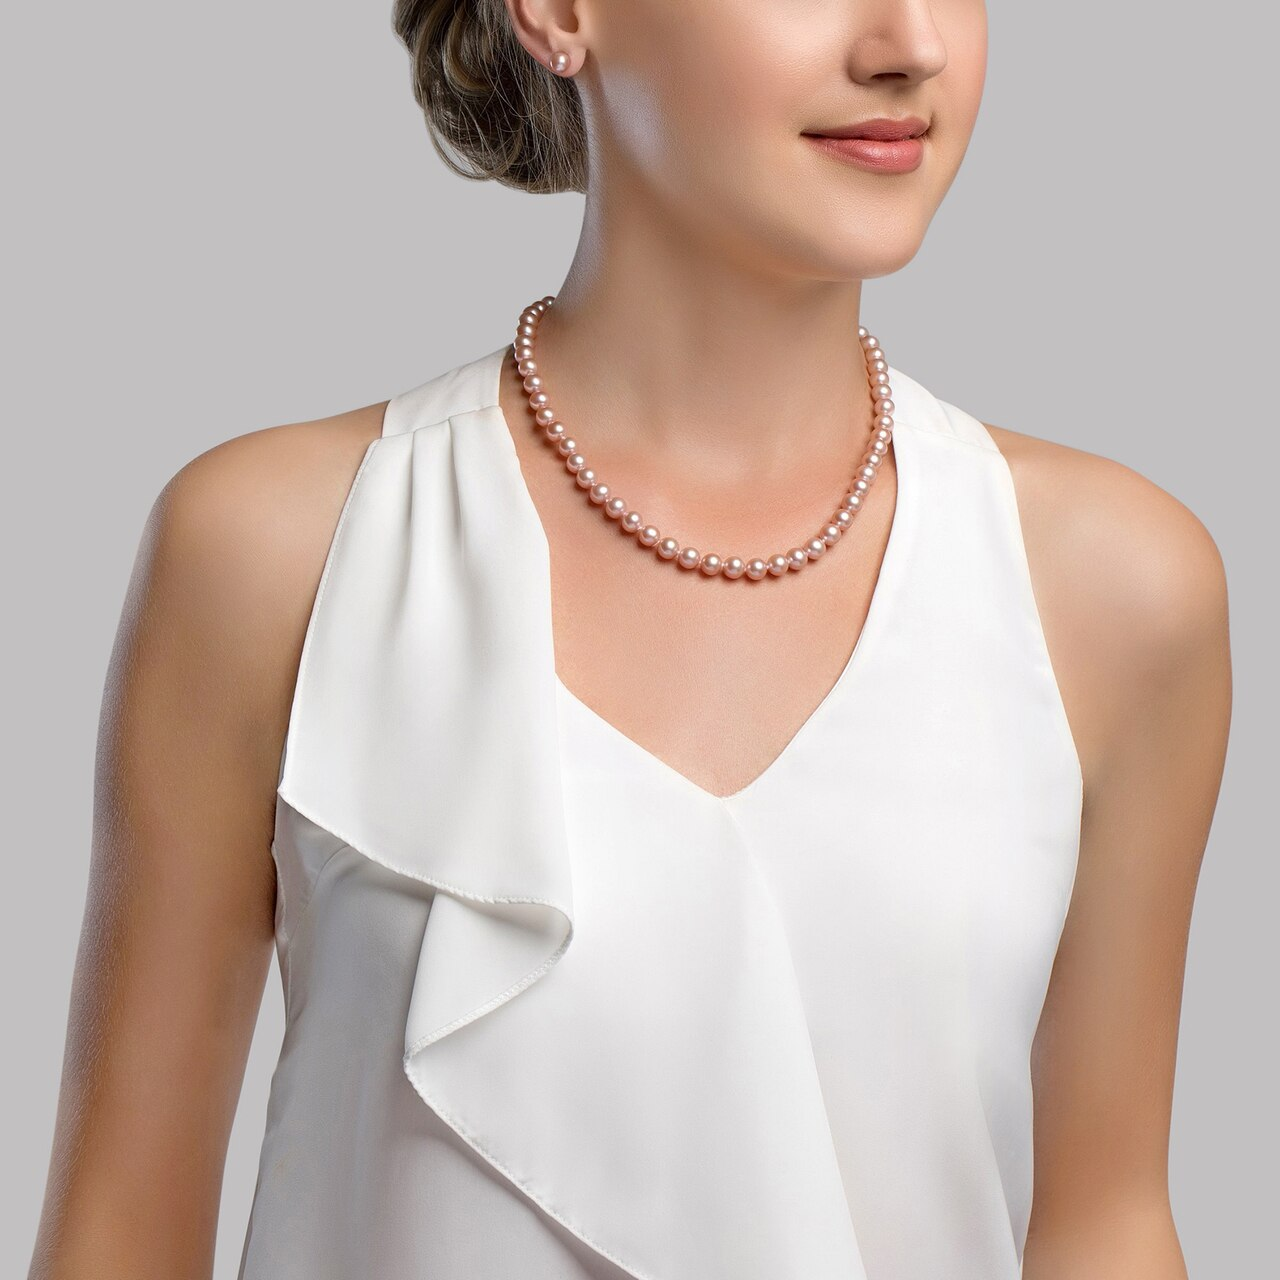 This gorgeous necklace features 7.0-8.0mm pink Freshwater pearls, handpicked for their luminous luster